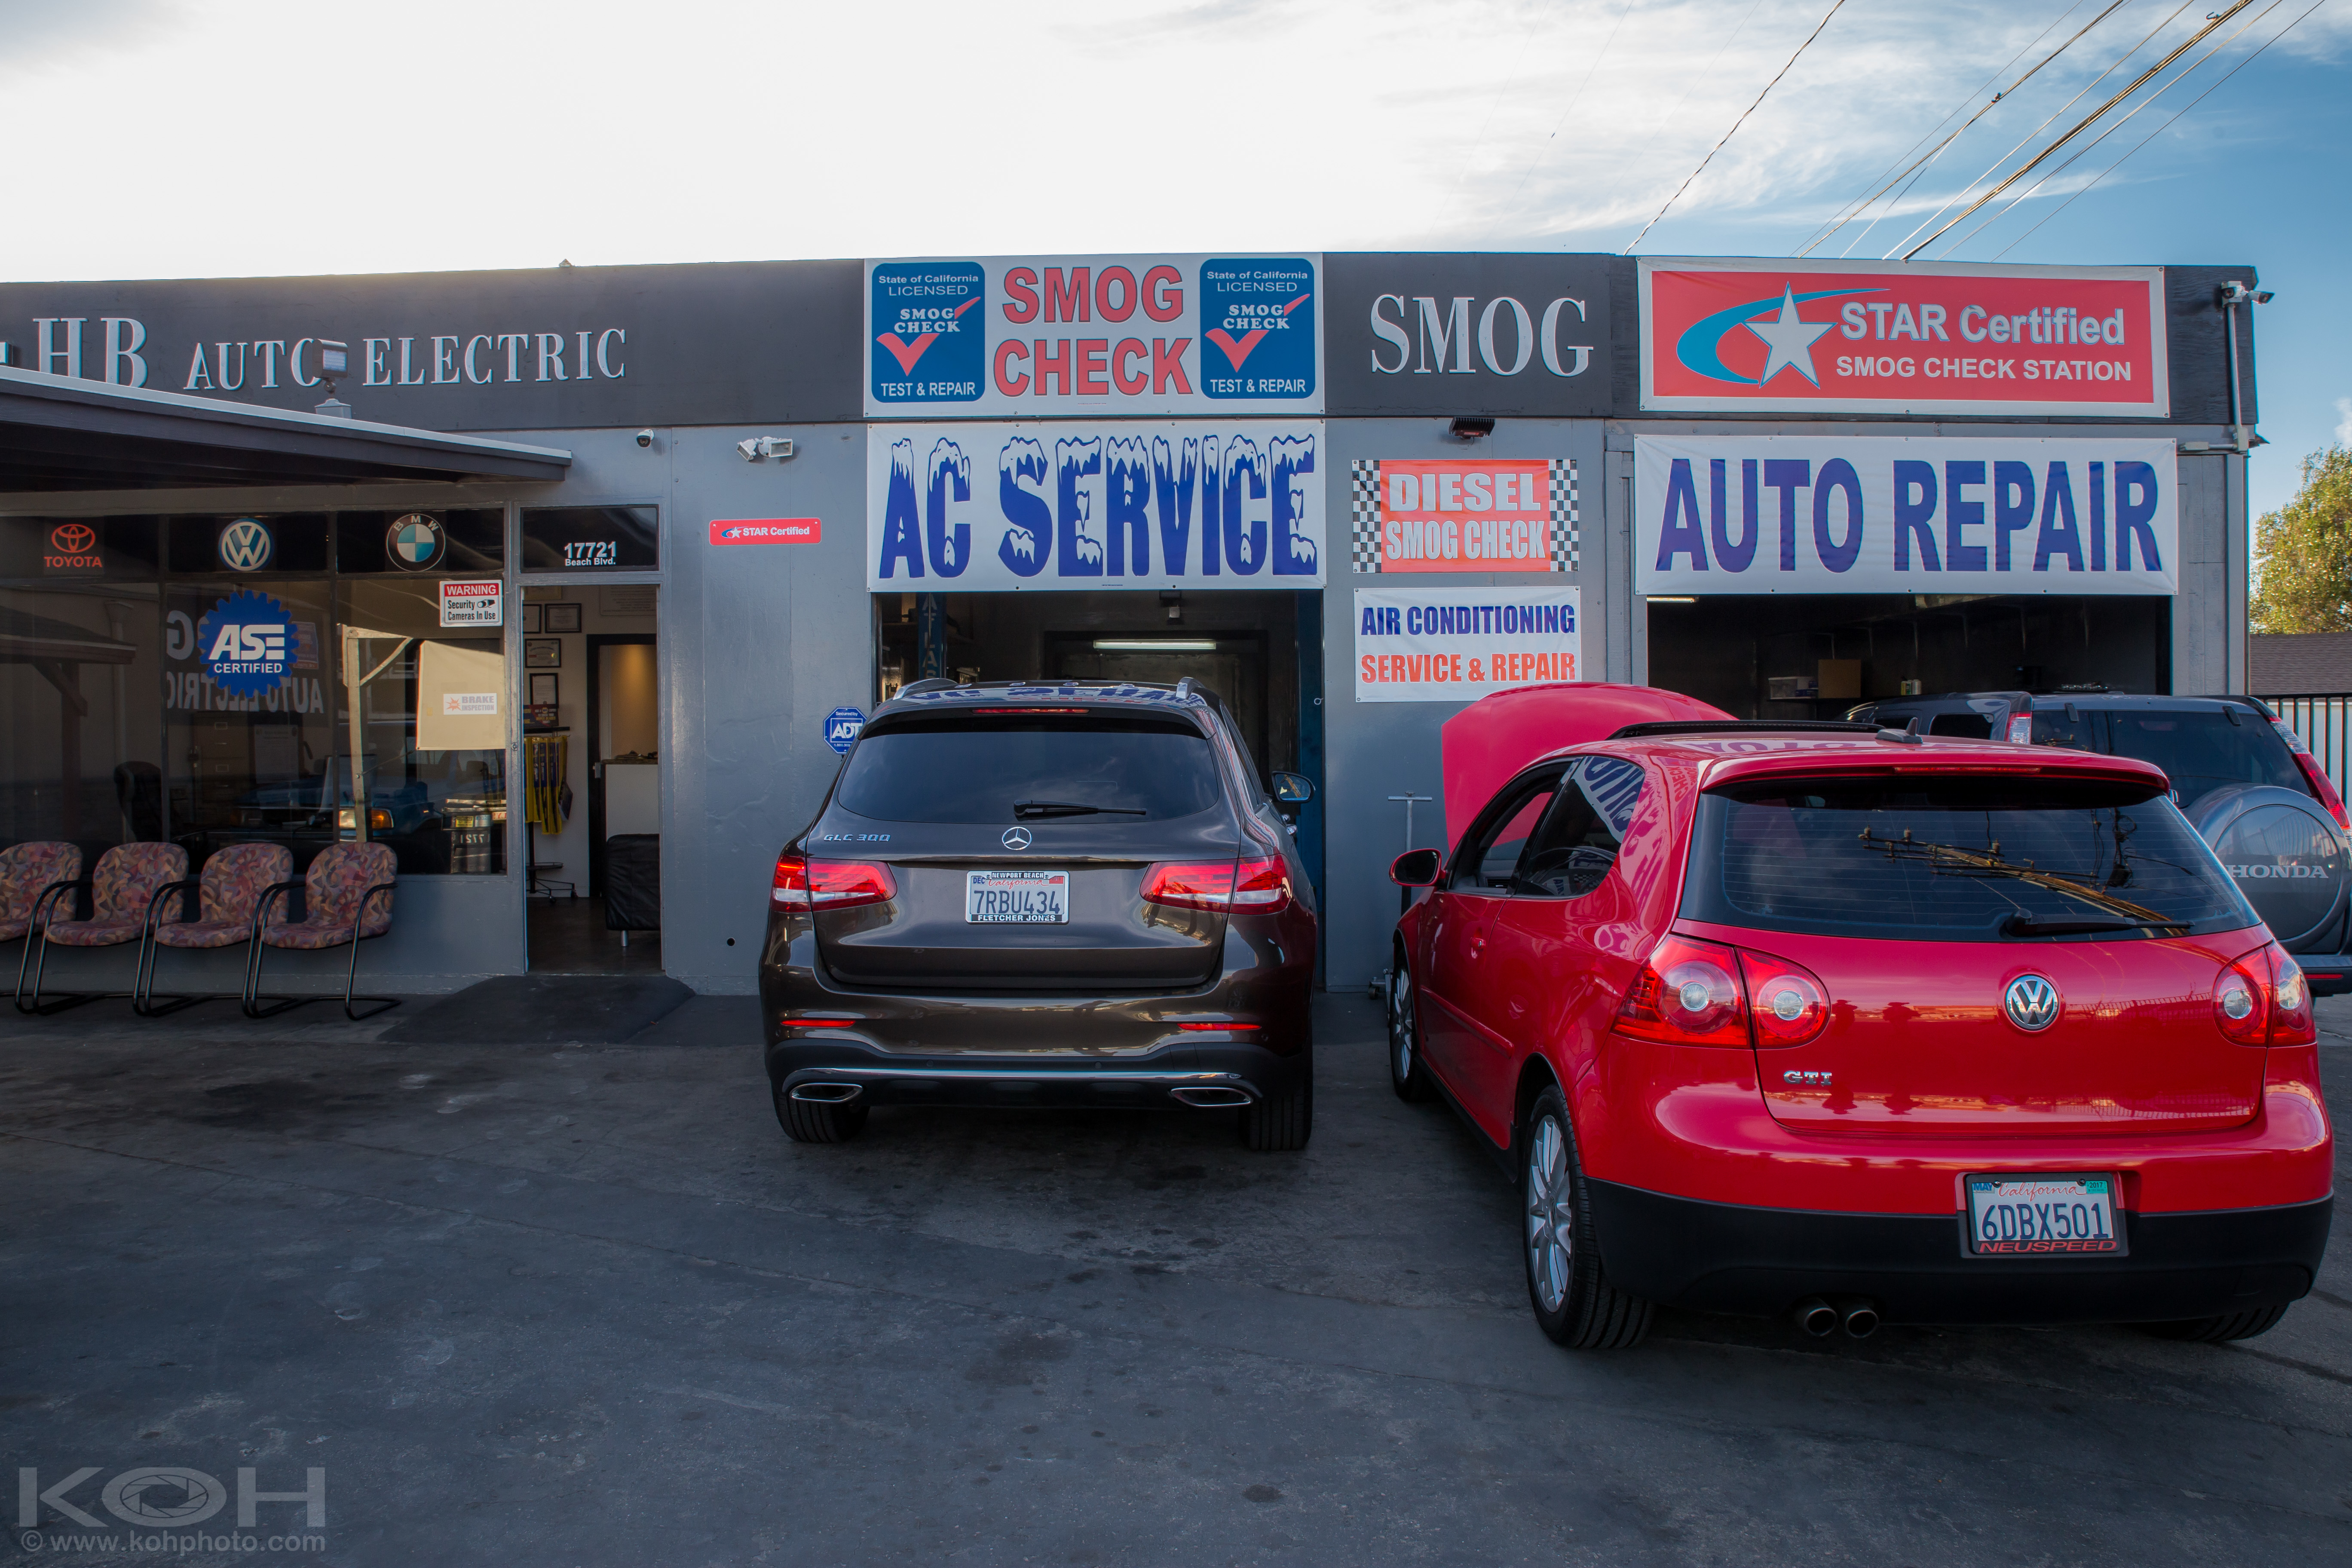 H b auto electric and smog huntington beach california for A and b motors